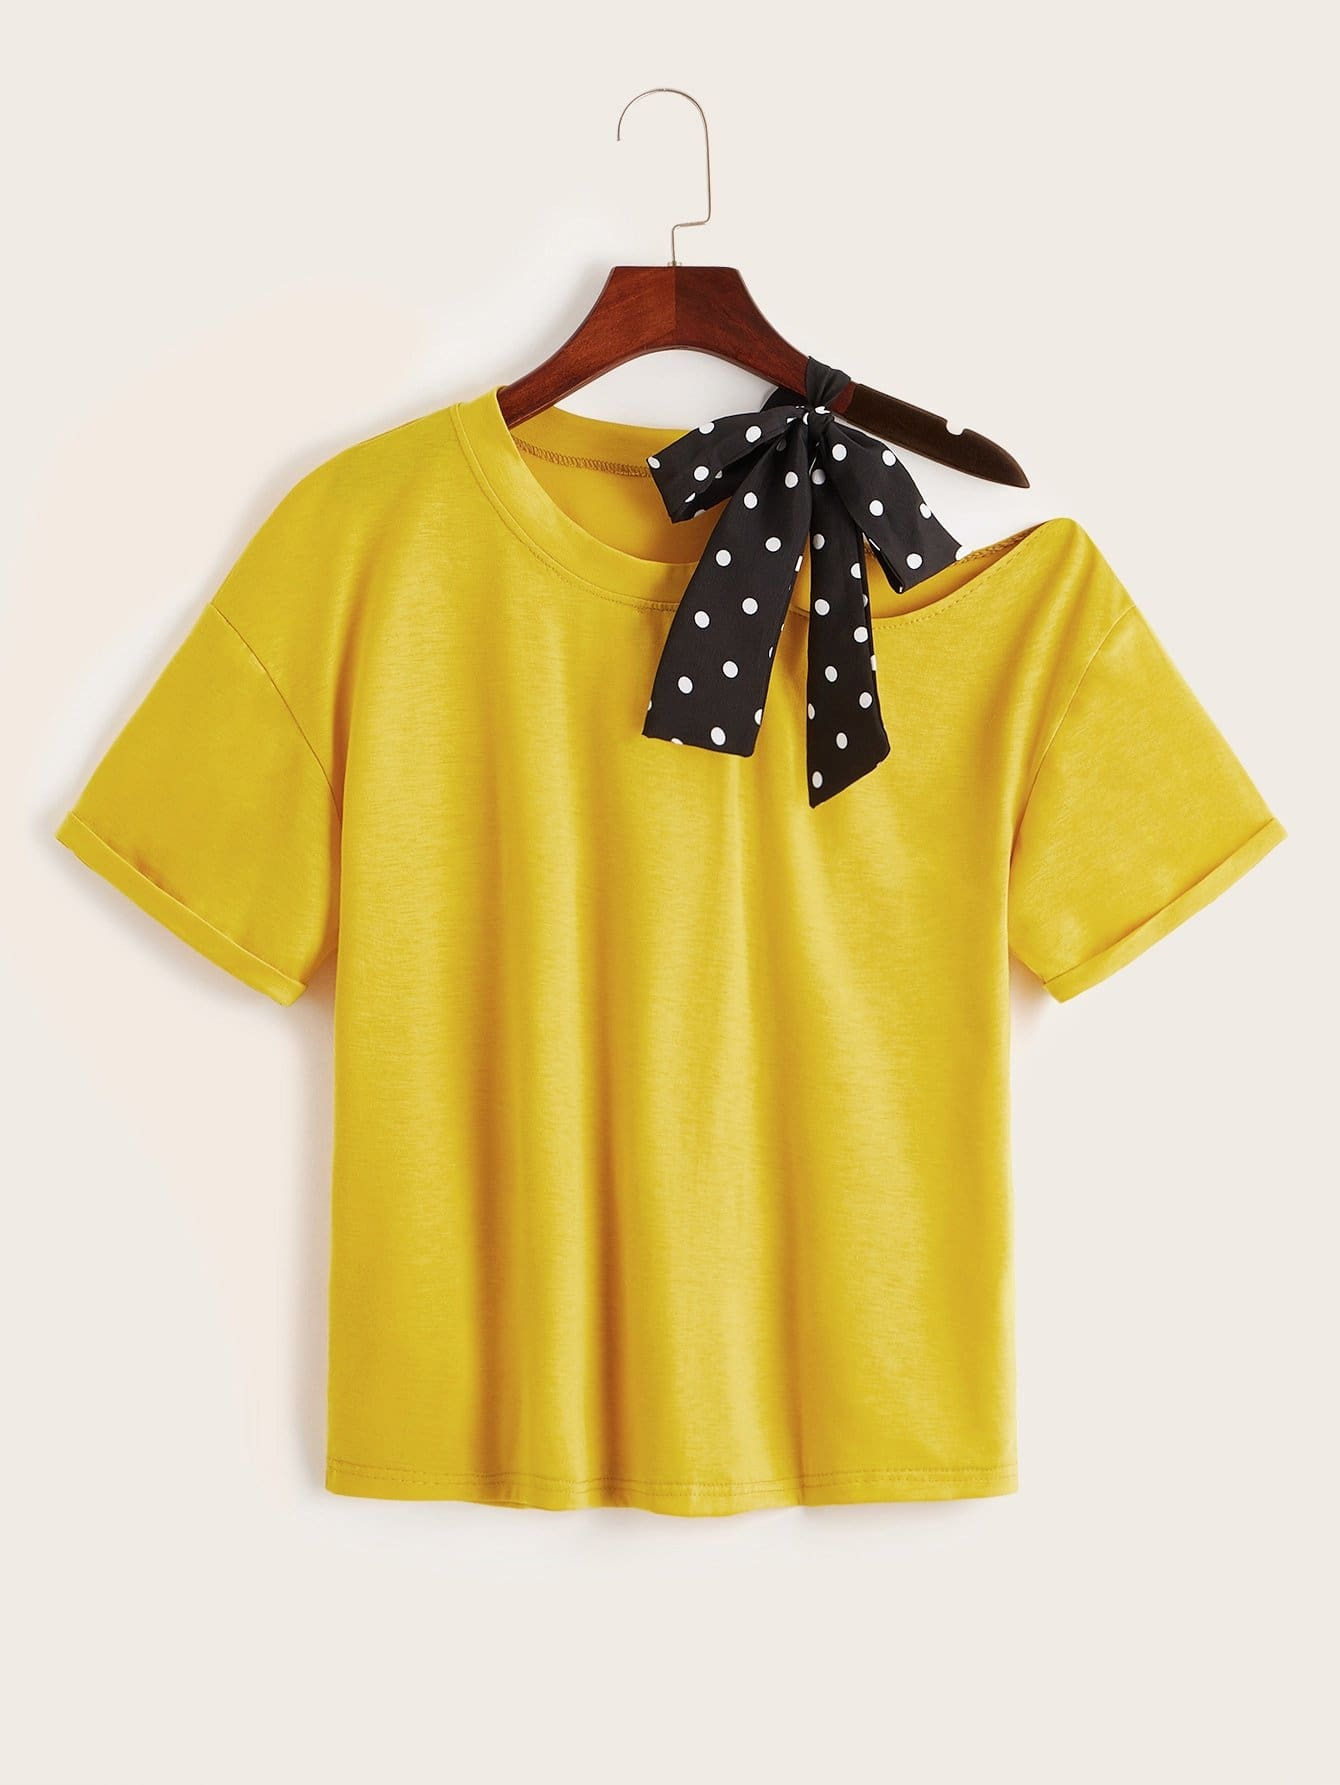 Contrast Polka Dot Tape Open Shoulder Tee - S - Shirts